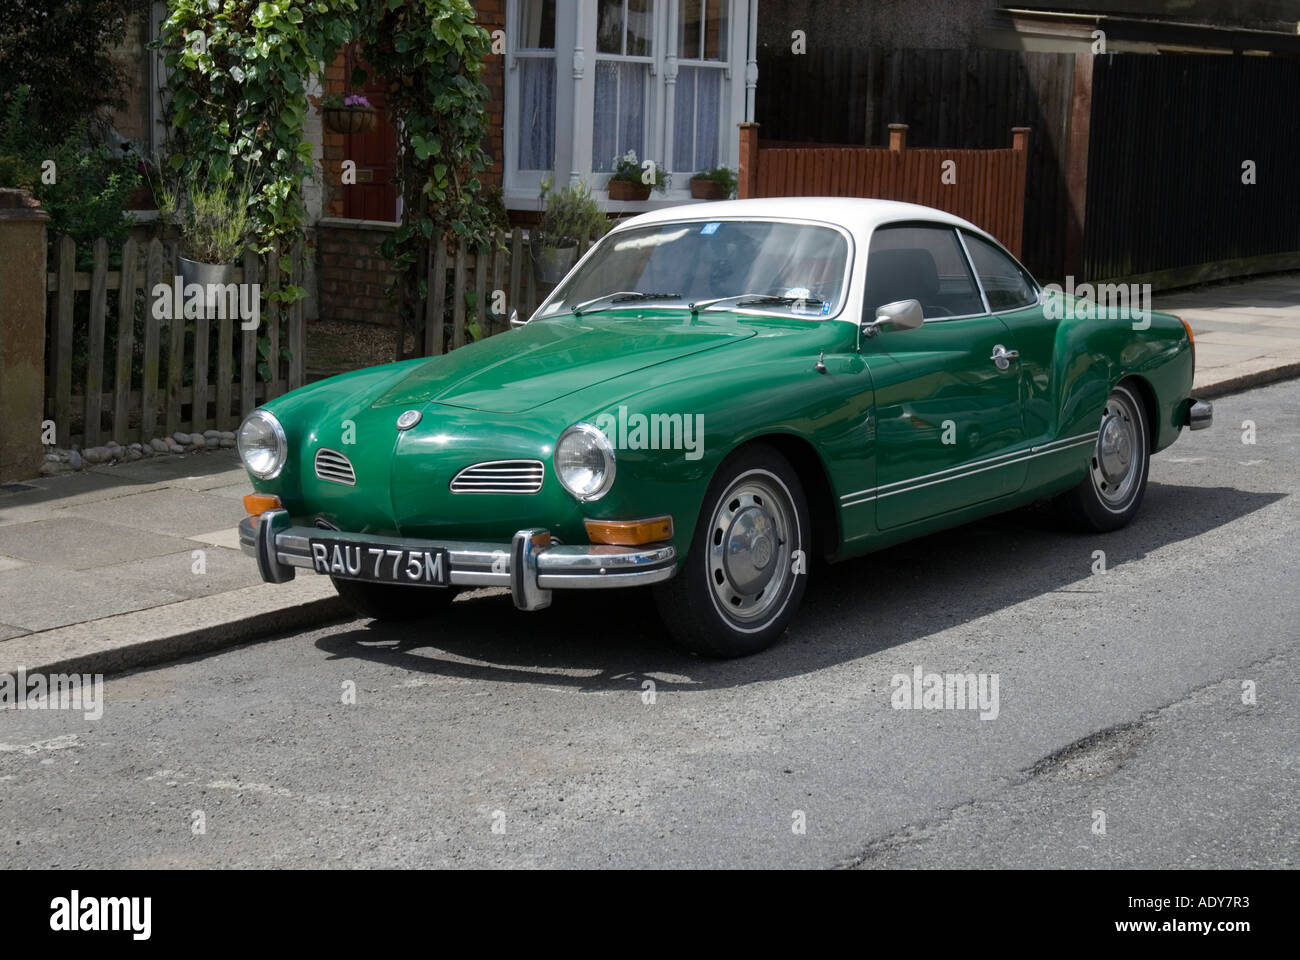 Vw Karmann Ghia Stock Photos Images Alamy 1960 Volkswagen Classic Car Image